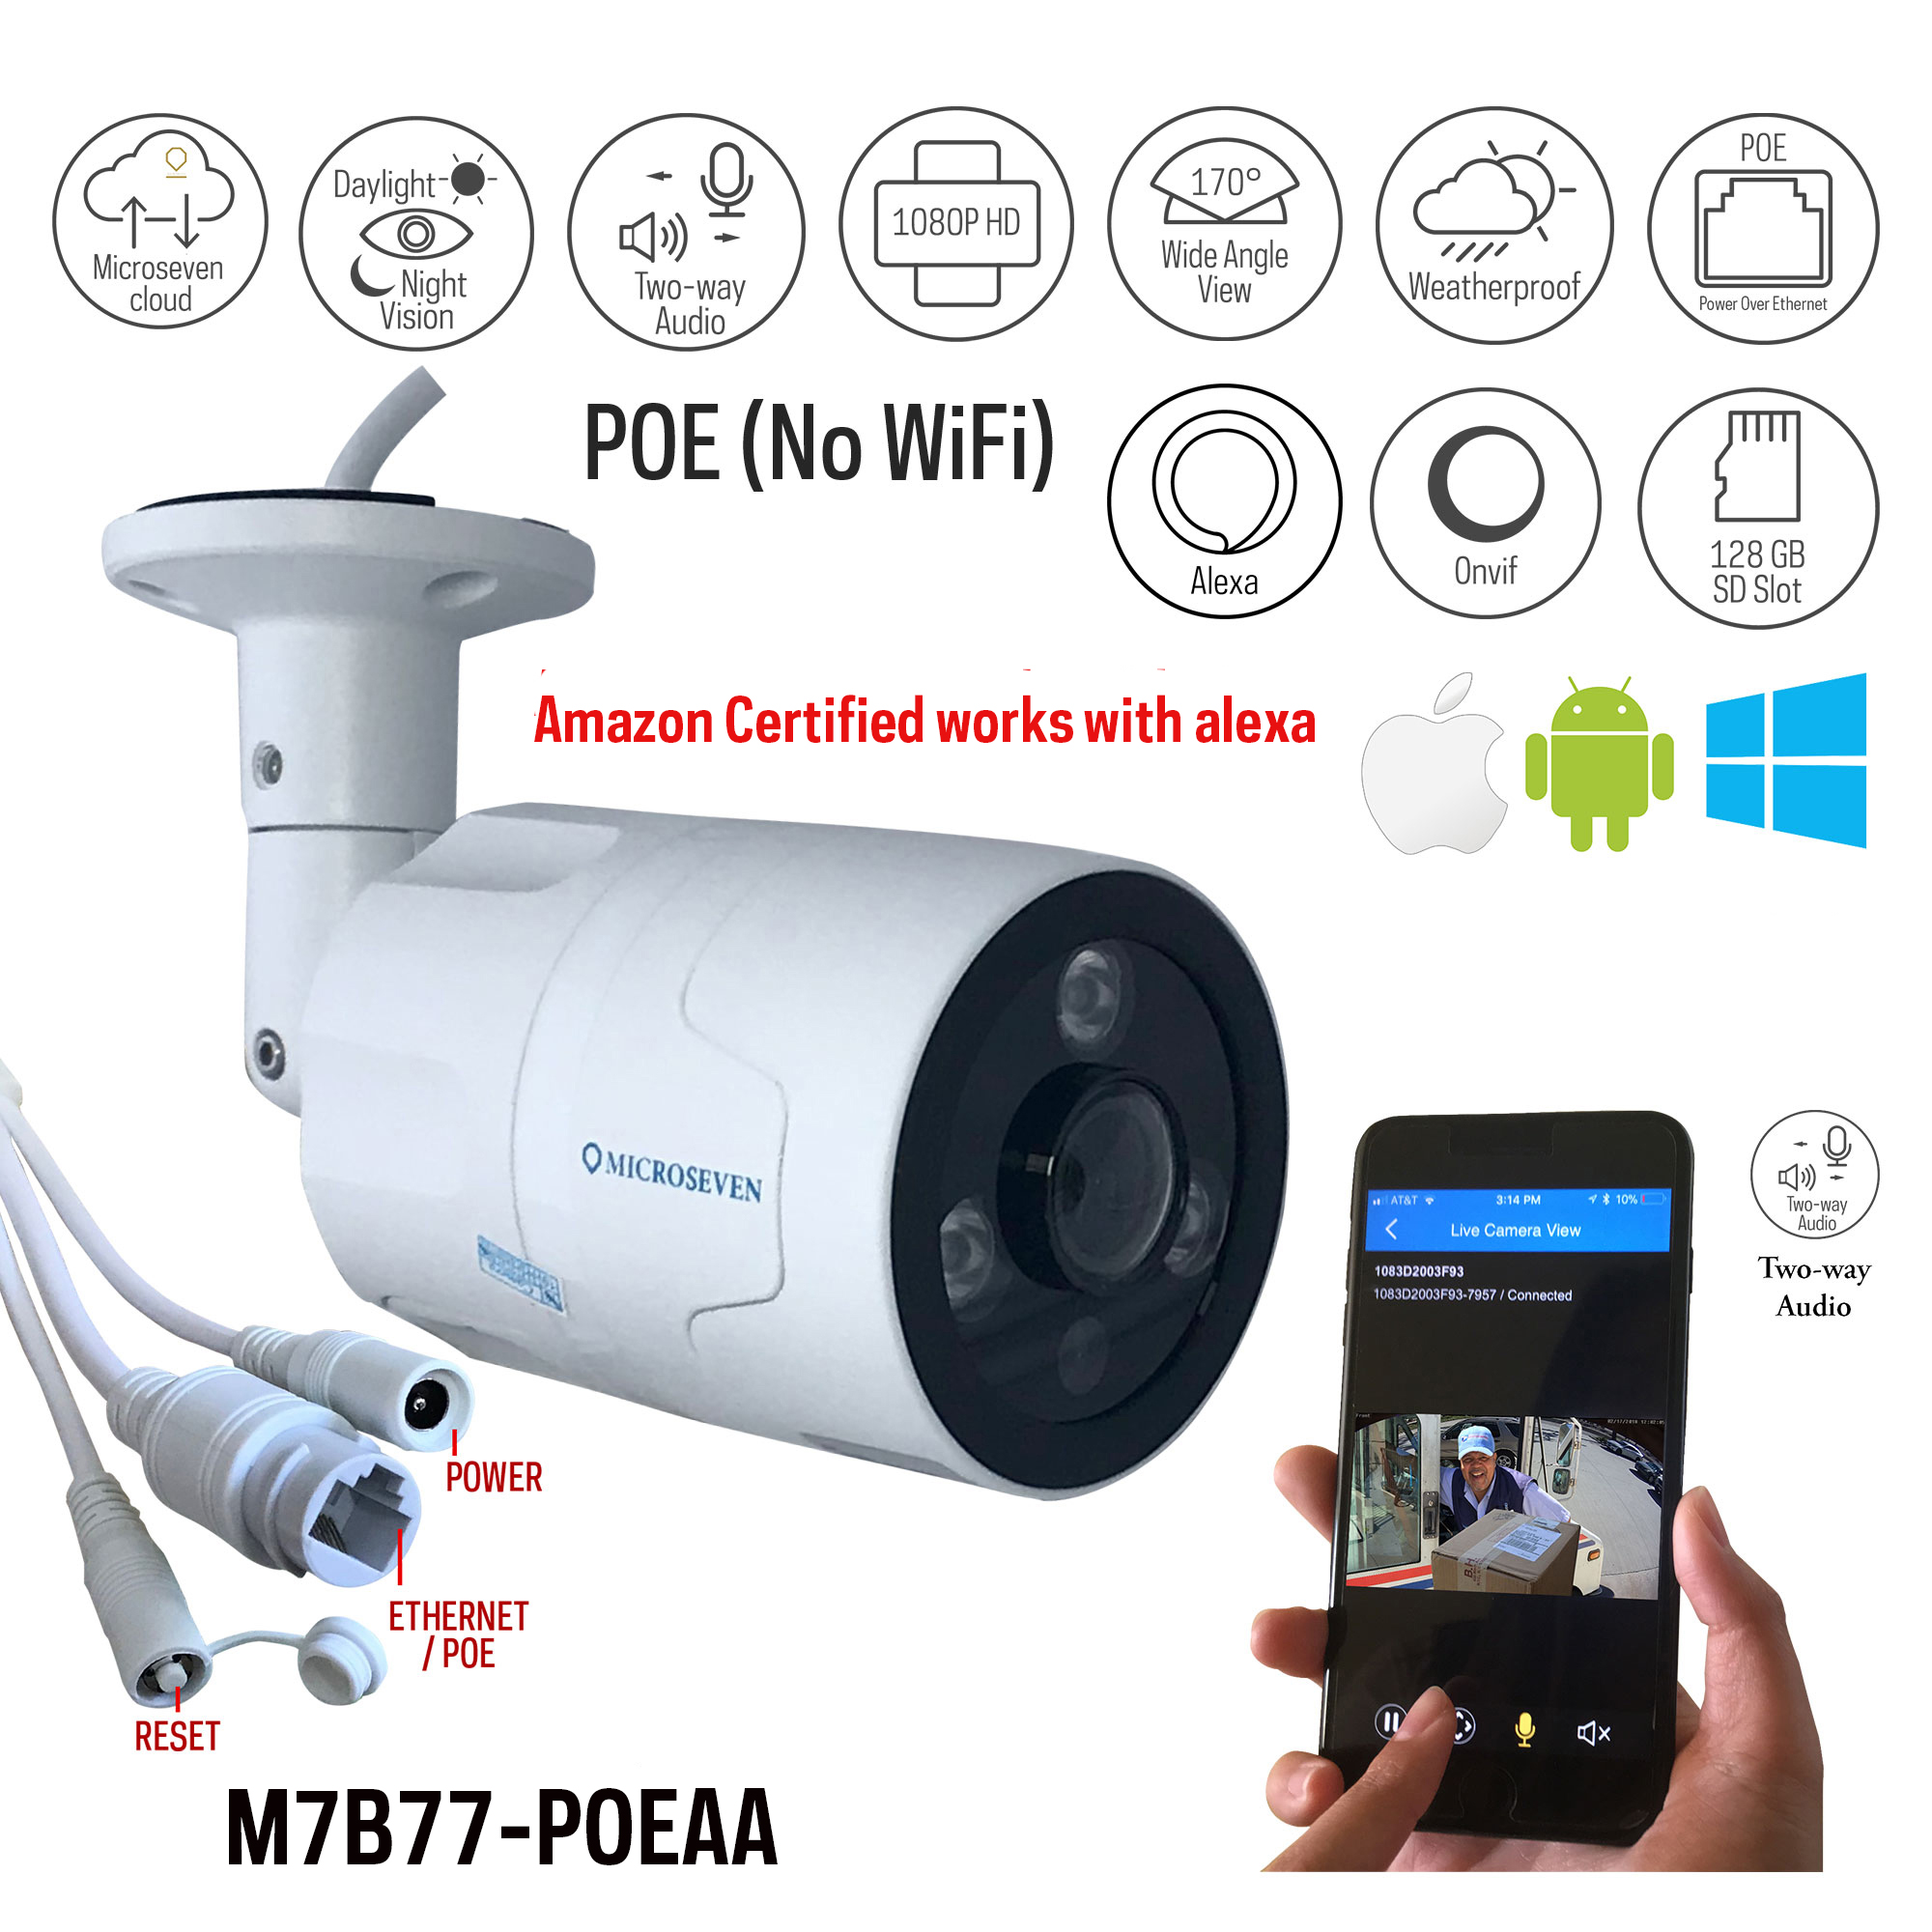 Microseven Open Source 1080P / 30fps Sony Chipset CMOS 5MP lens ProHD POE Outdoor Camera, Amazon Certified Works with Alexa, Two-Way Audio Wide Angle (170°) POE Camera, IR Motion Detection POE IP Camera, 128GB SD Slot, Night Vision Bullet POE Camera, Waterproof Security Camera, ONVIF CCTV Surveillance POE Camera,Web GUI & Apps,VMS (Video Management System), Free 24hr Cloud Storage